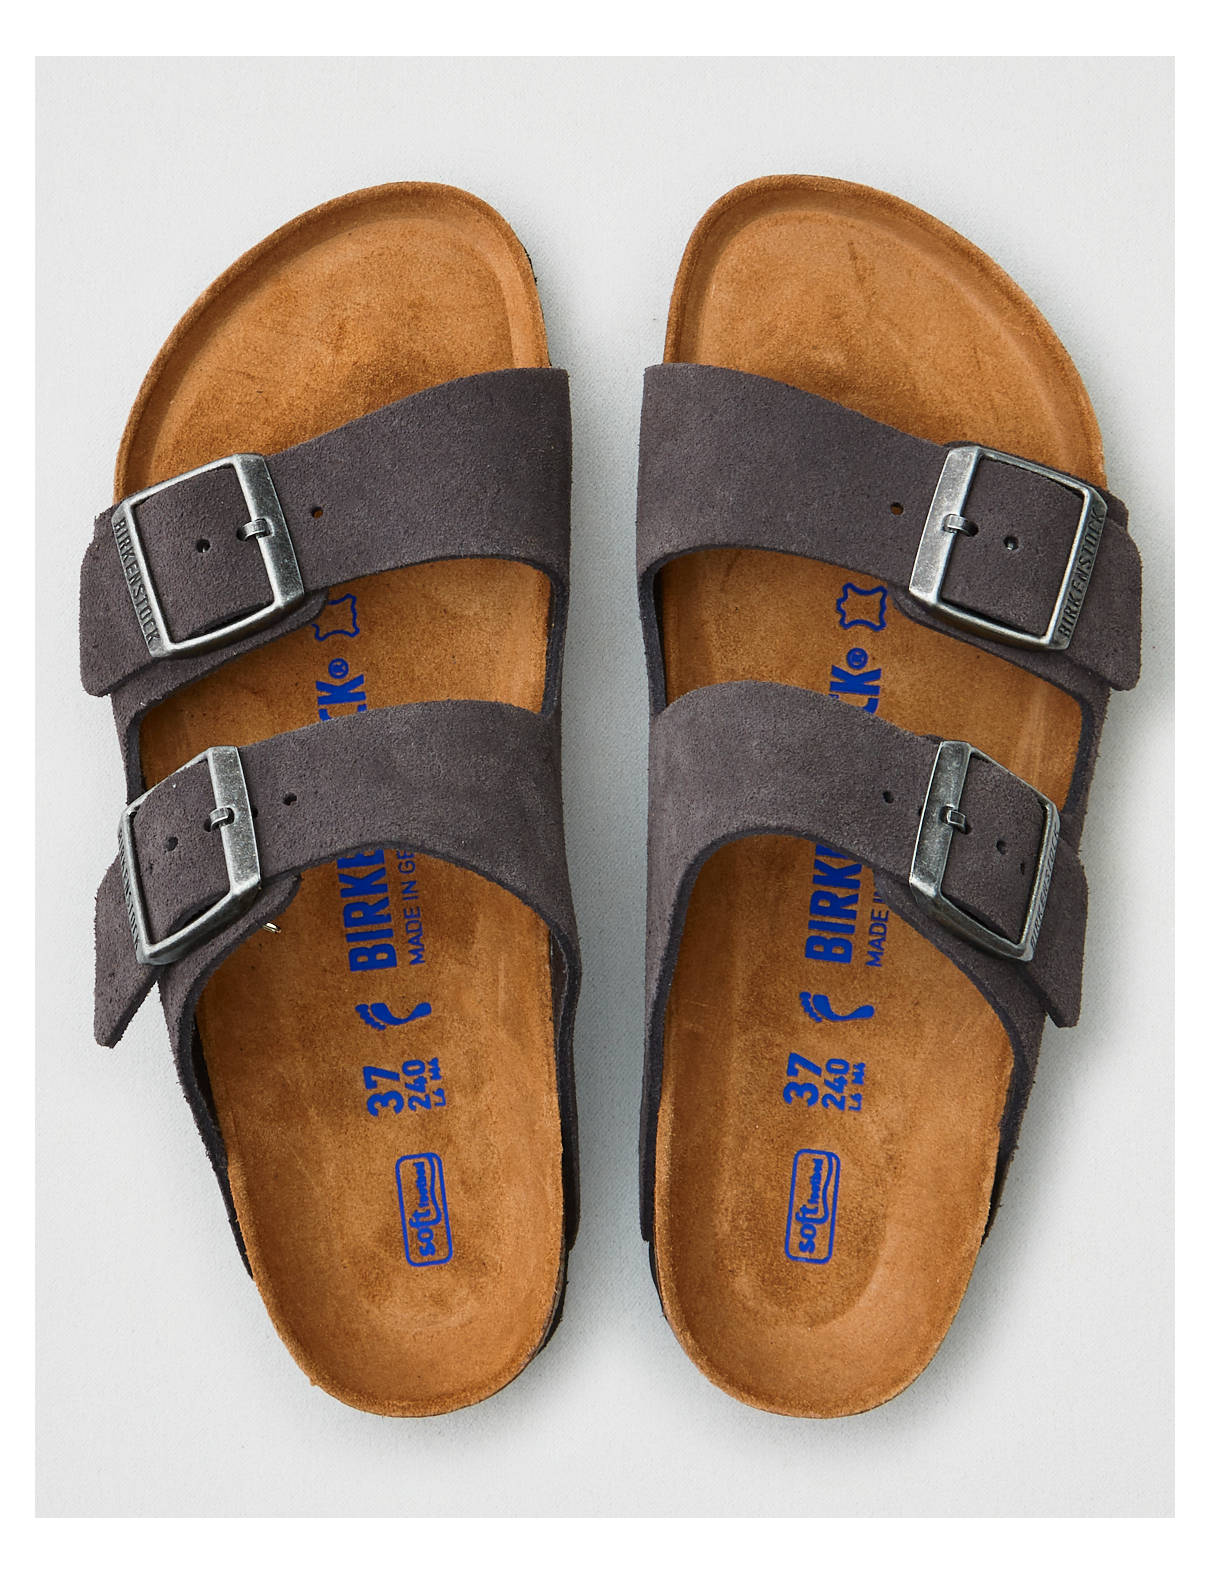 Birkenstock Arizona Soft Footbed Cognac American Eagle Outfitters Tendencies Sandals 2 Strap Brown 40 This Review Is Frombirkenstock